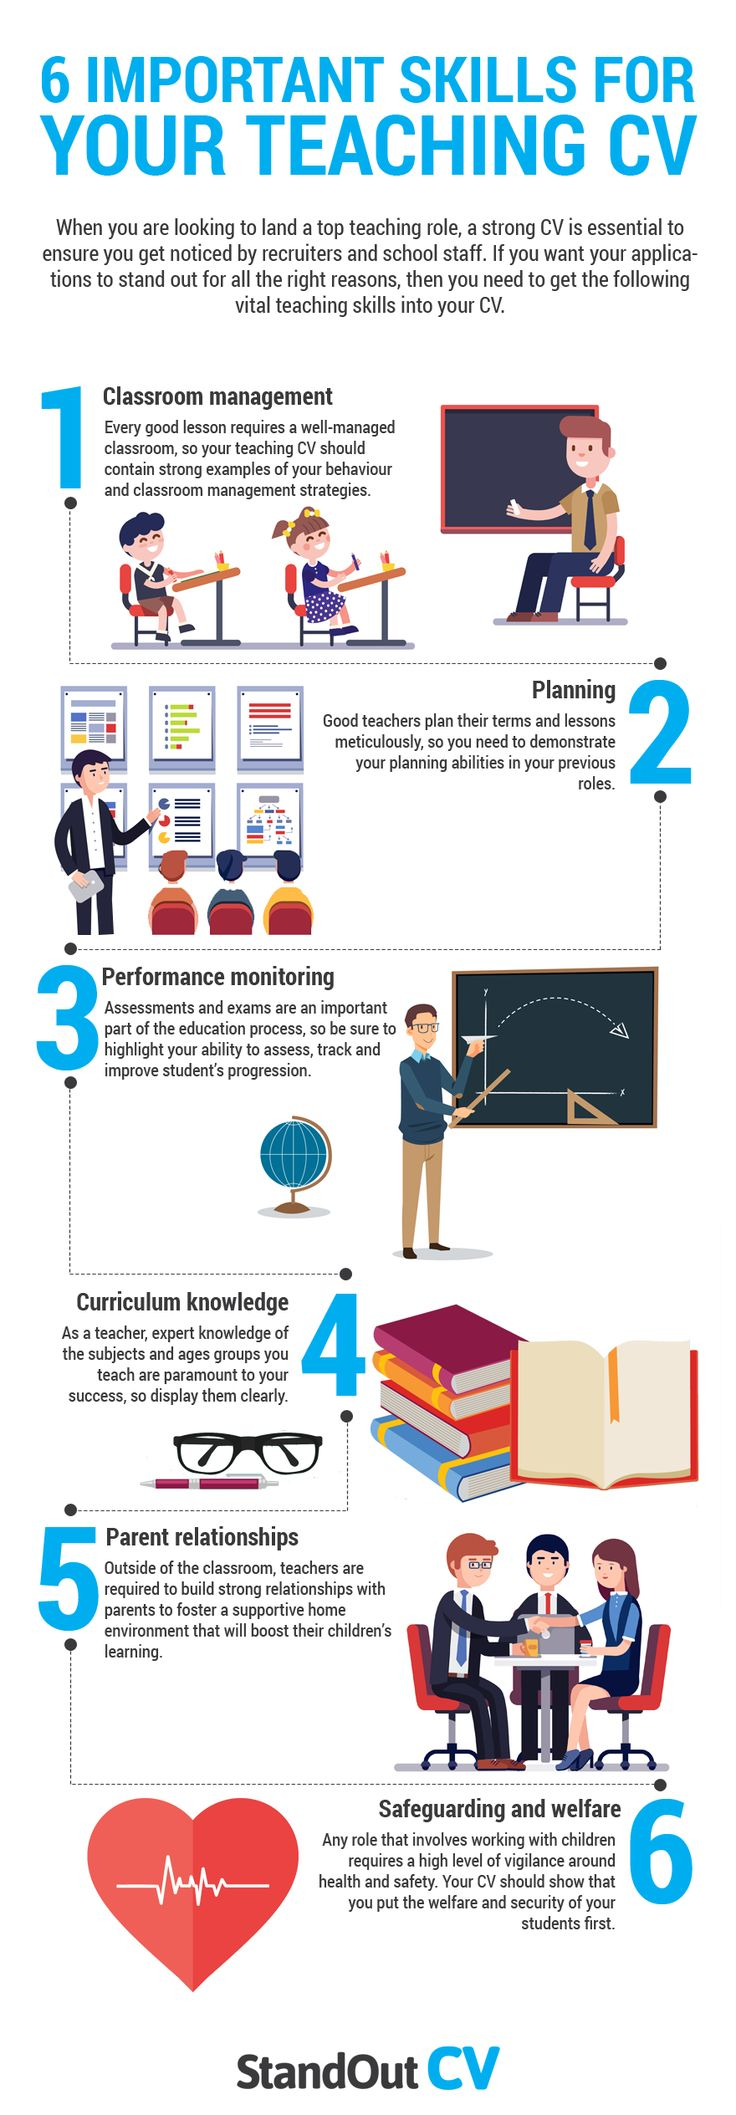 Teacher CV advice Learn 6 important skills to add to